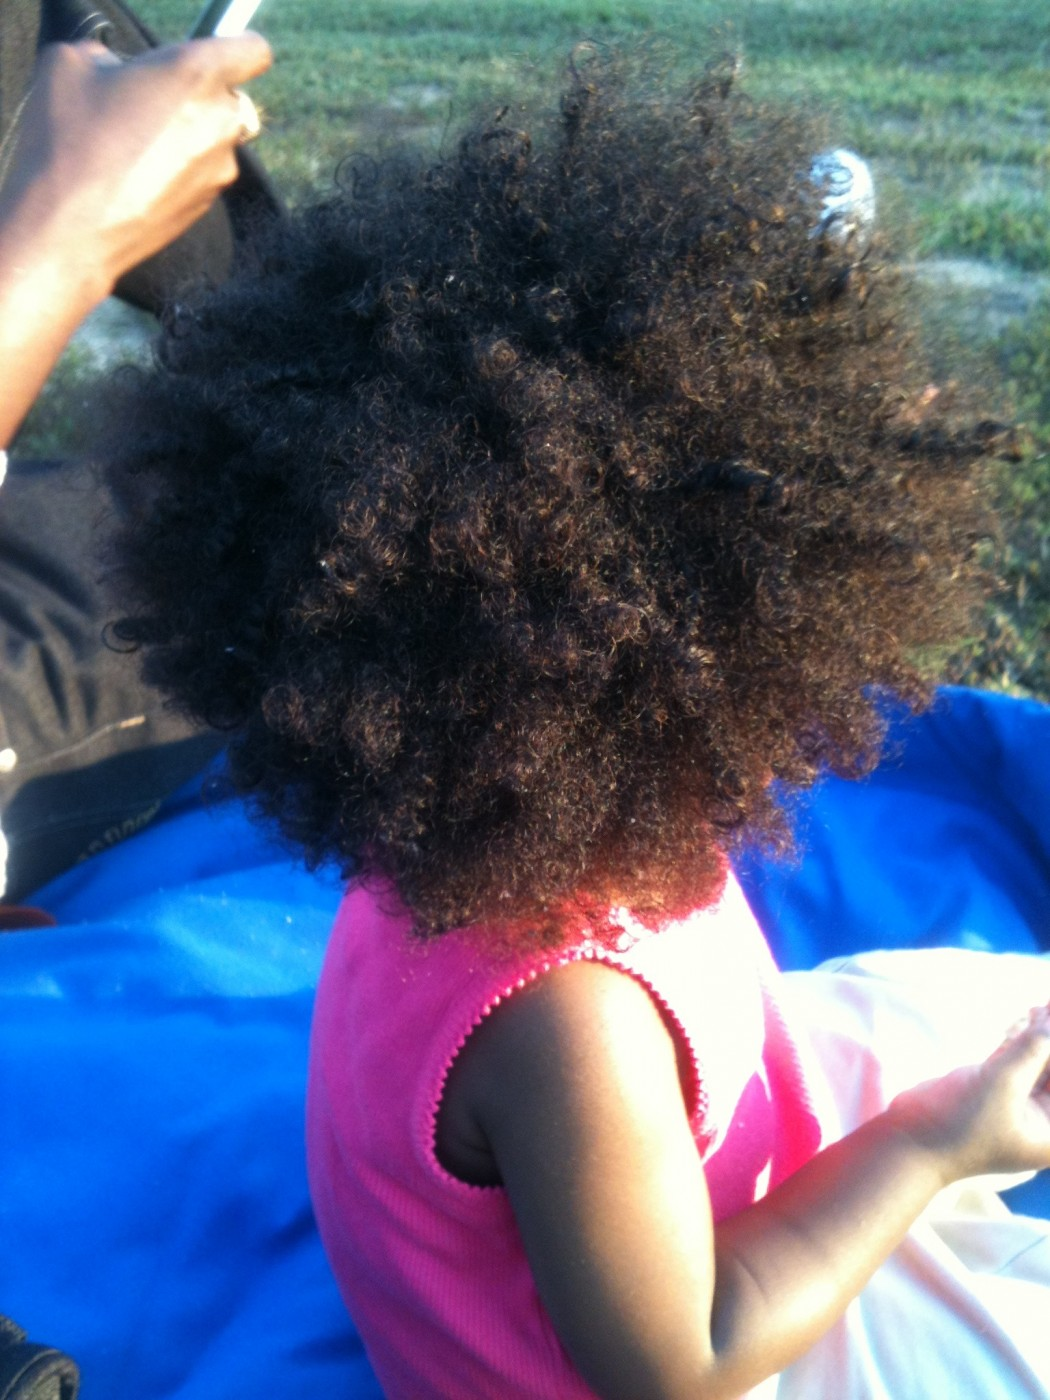 My baby's hair, the way we both love it.